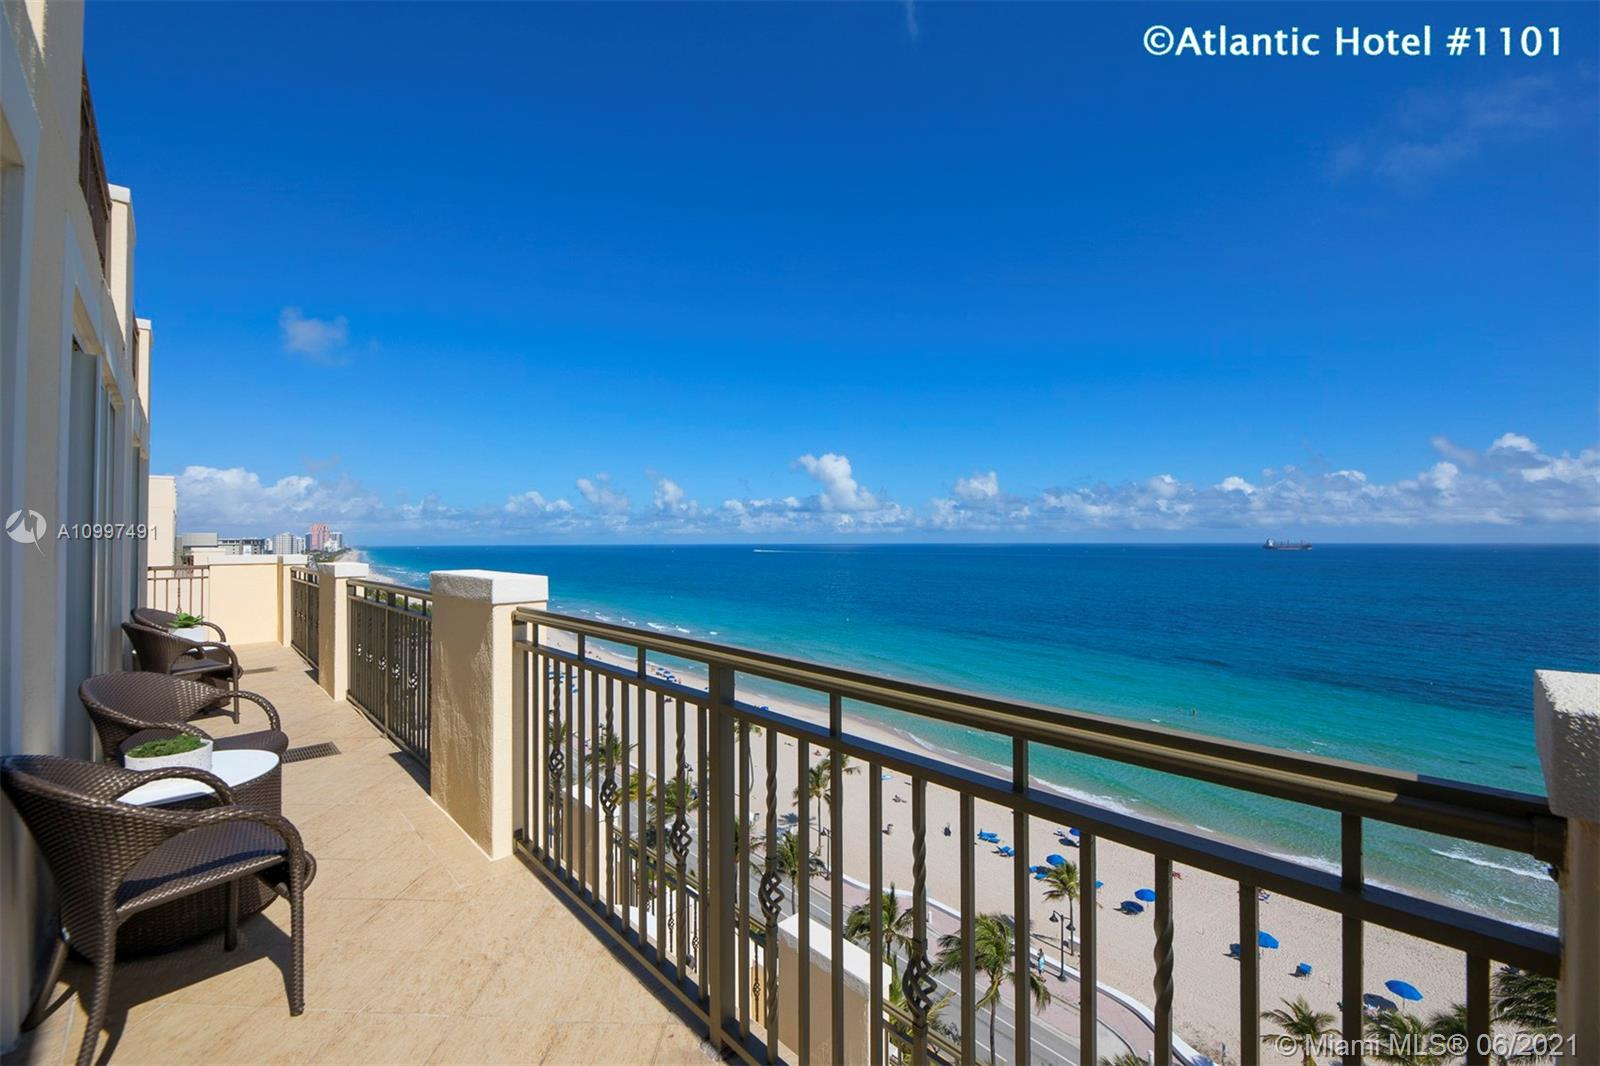 COOL MEETS COASTAL IN THIS SPECTACULAR ATLANTIC HOTEL CONDO WITH DIRECT OCEAN FRONT VIEWS FROM EVERY ROOM!  This updated contemporary condo is furnished with a split floor plan that includes 2 master bedrooms with ensuite marble bathrooms; fully functional kitchen with wood cabinets, granite countertops and SS appliances! THE ATLANTIC HOTEL & SPA offers 5 star amenities , valet parking, 24 hour concierge, doorman, room service, fine dining, rooftop bar (SKY Bar) and oceanside eatery on site, European Spa and Fitness Center, Oceanfront Pool & Cafe.  You can live here all year round, use the Hotel's rental program, or rent it out yourself!  Investors - this amazing condo is currently earning between 5-6% Cap Rate.  COME LIVE YOUR DREAM LIFE!  THERE IS NOTHING LIKE THESE VIEWS AT THIS PRICE!